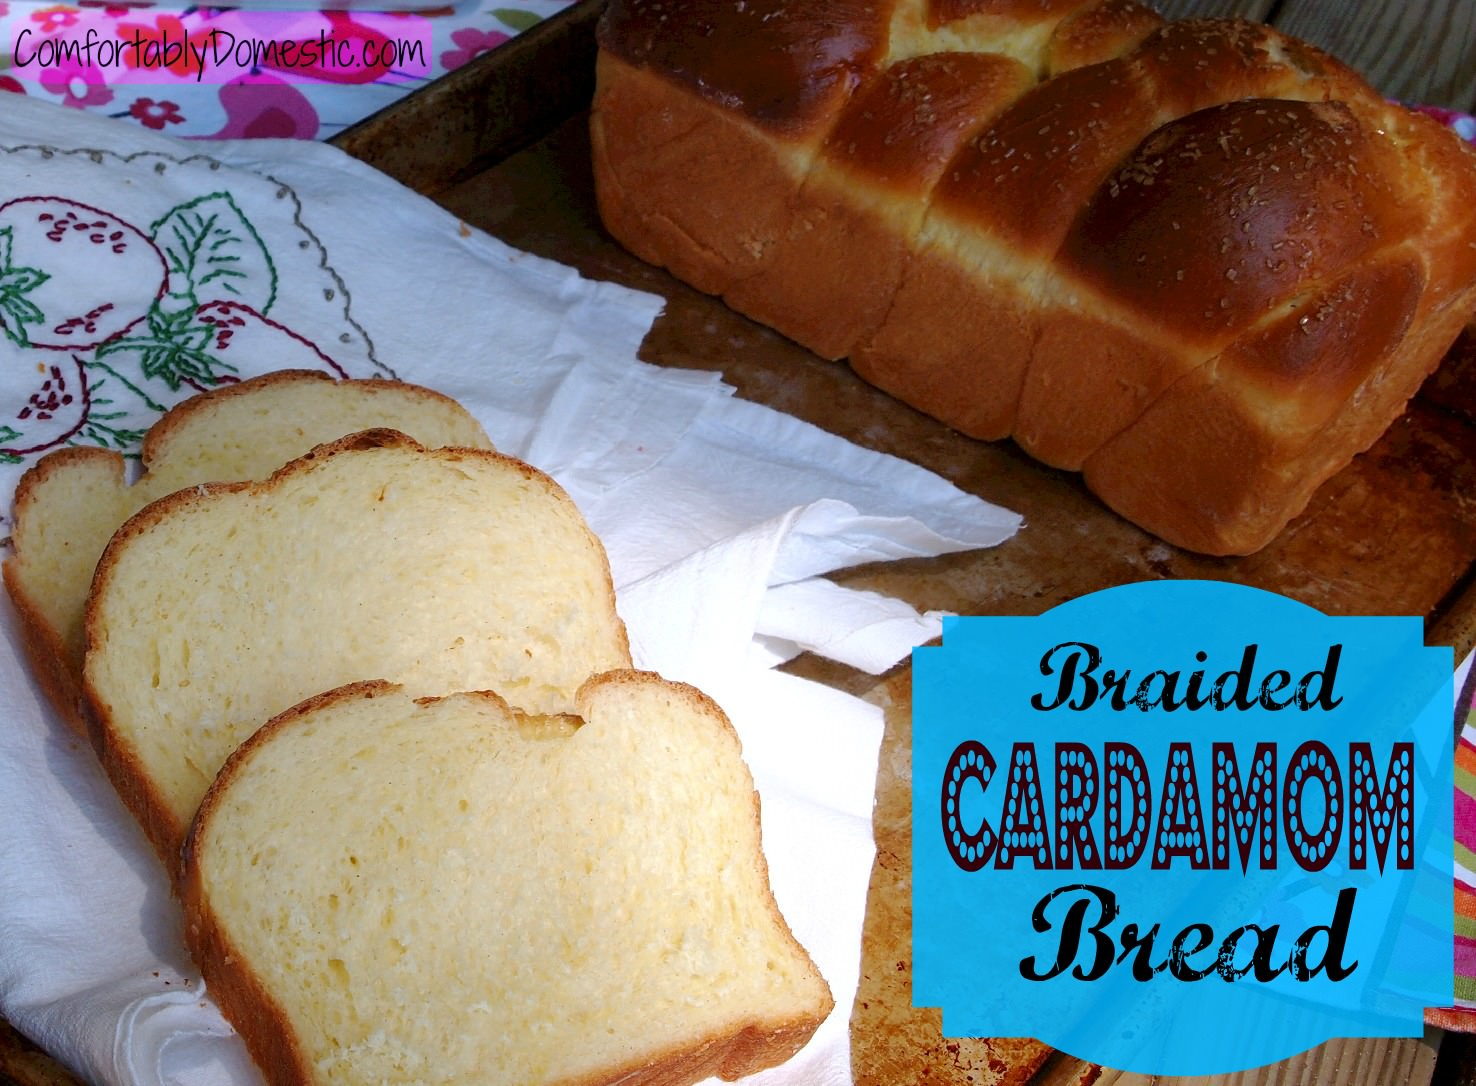 Braided cardamom bread, sometimes known as cardamom Nisu bread, is a ...